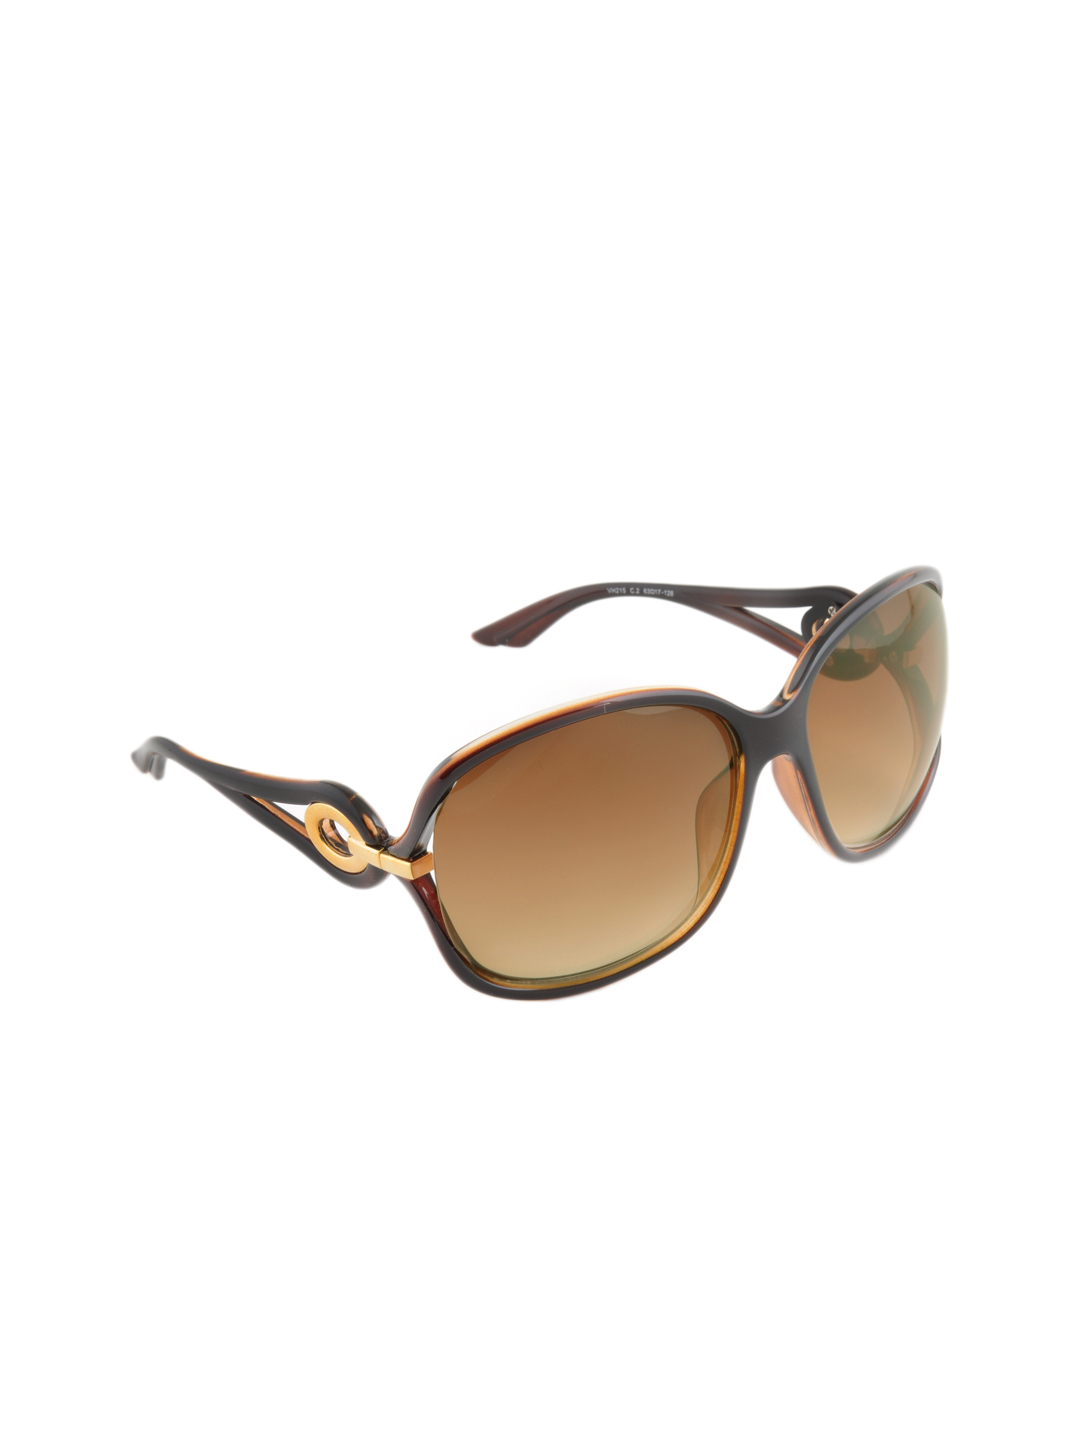 Van Heusen Women Brown Sunglasses